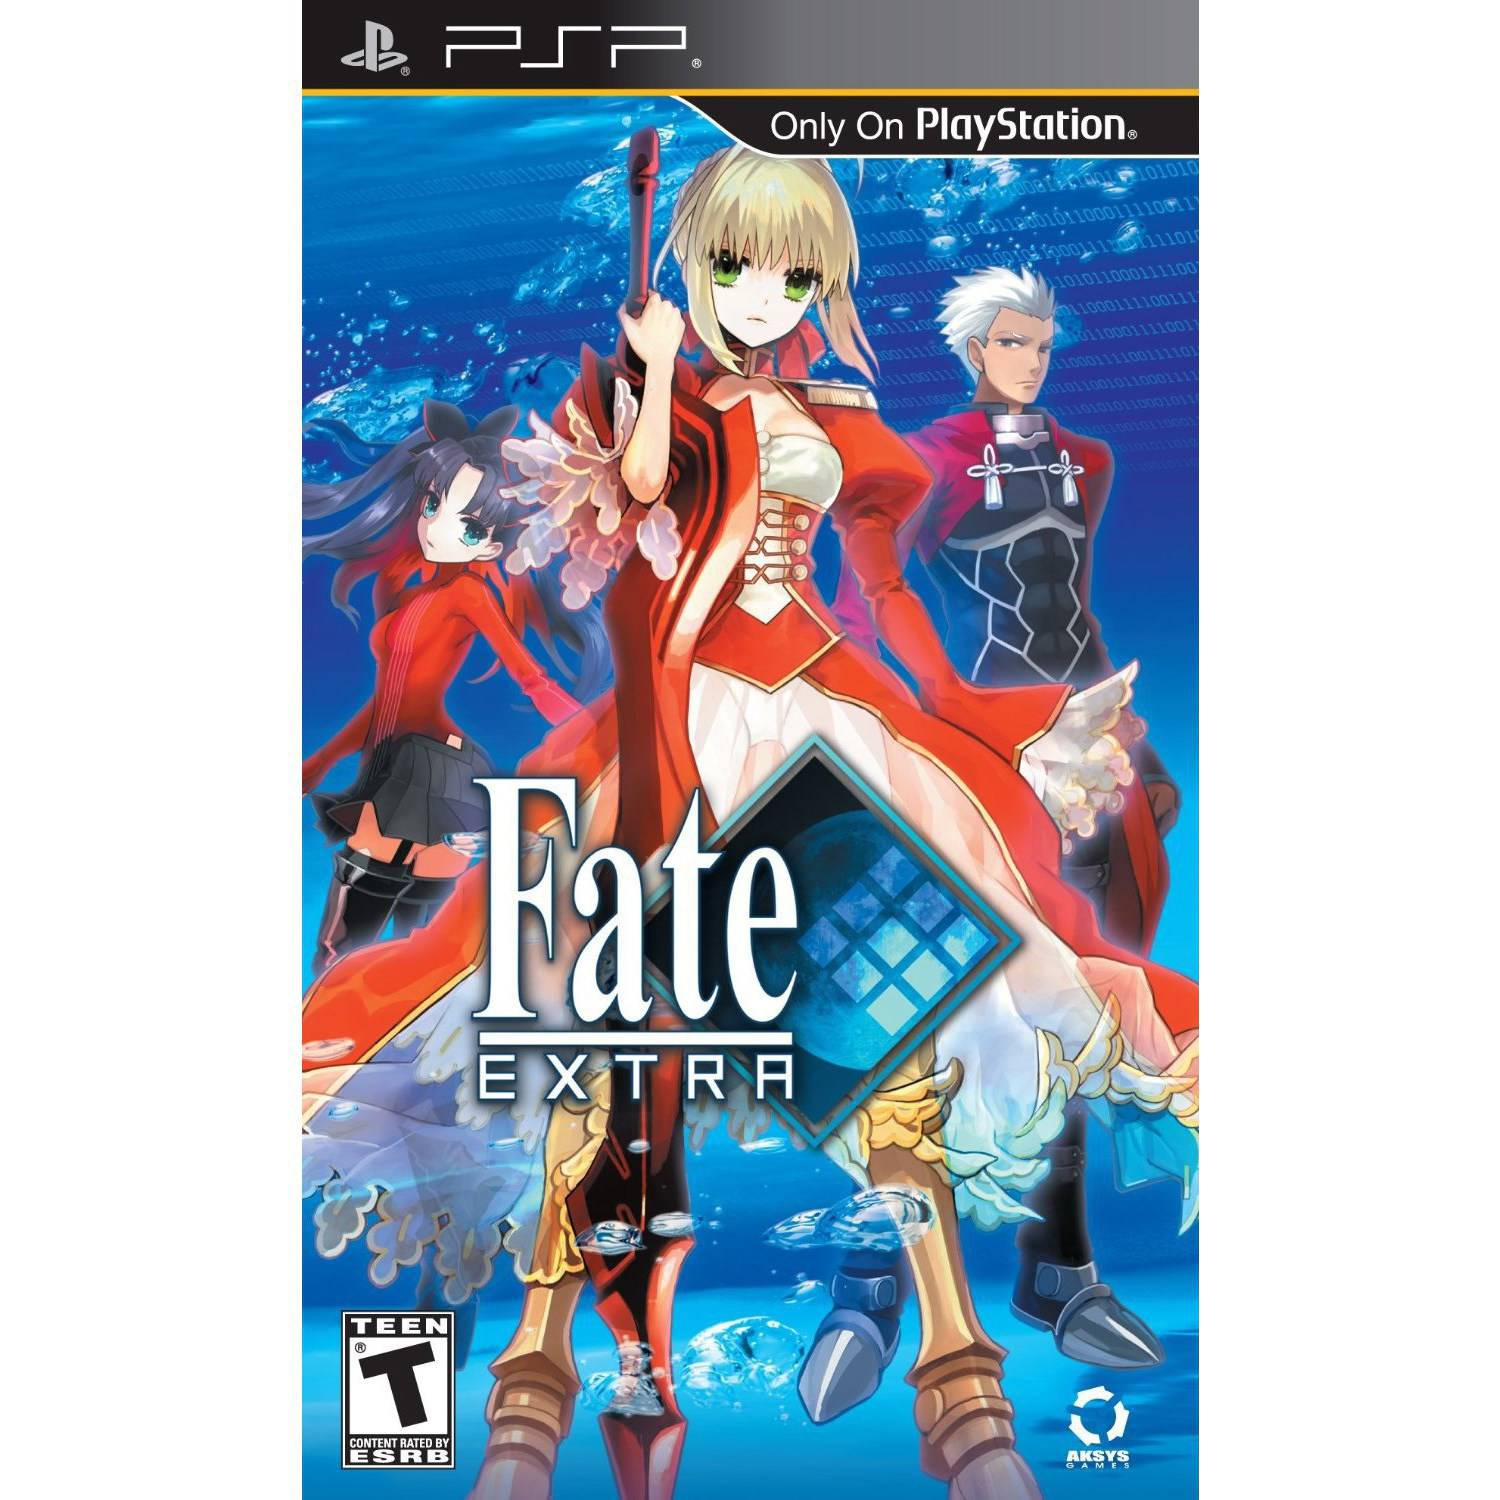 Fate Extra PSP Limited Edition